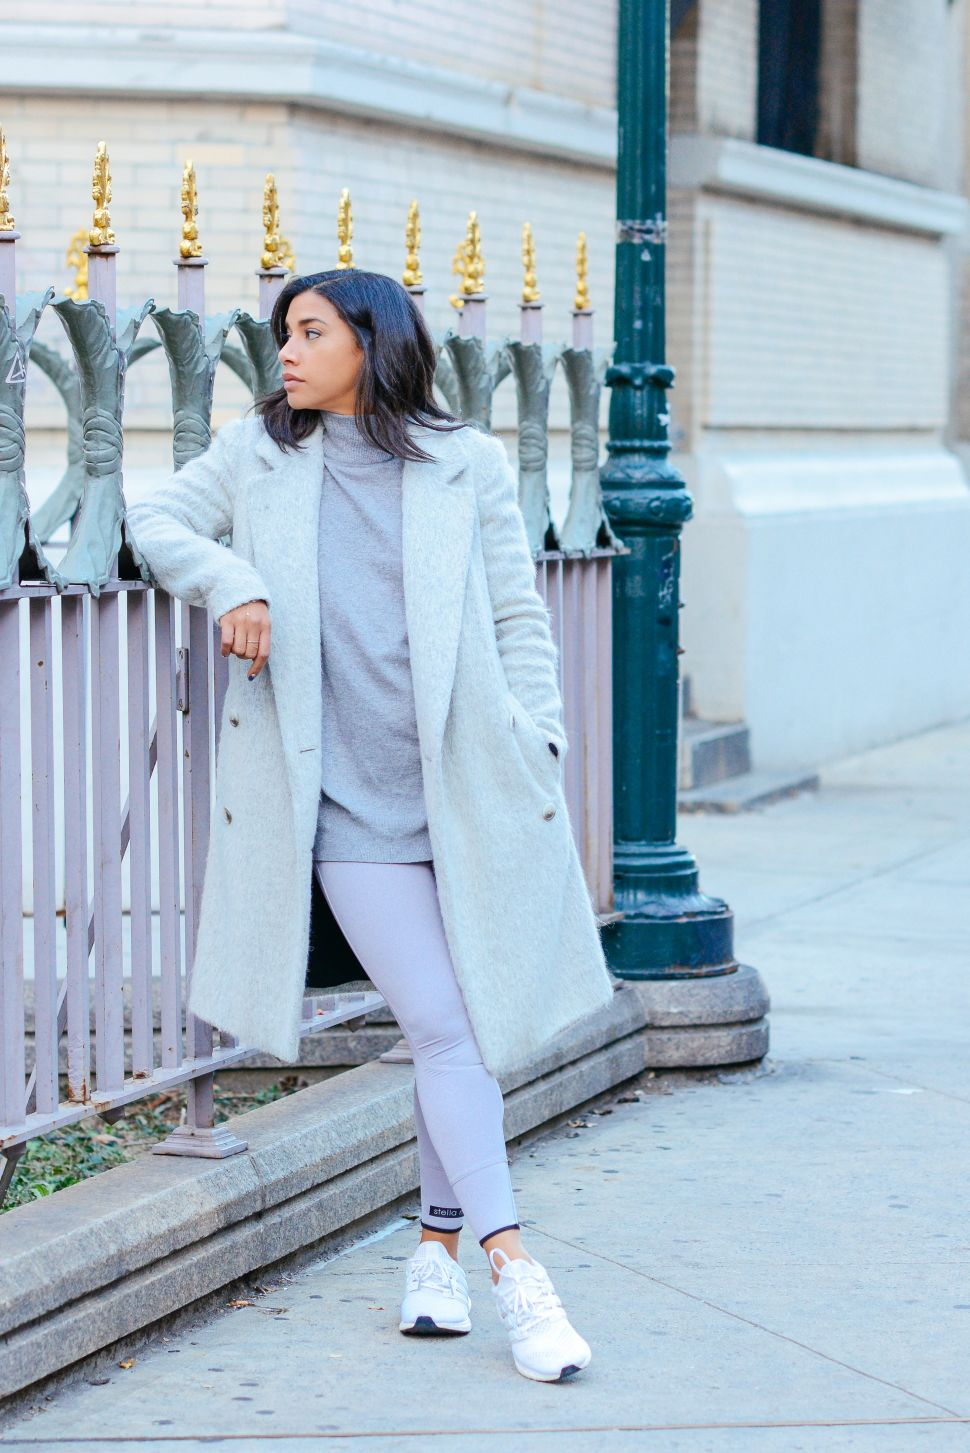 Hannah Bronfman Shares Her Favorite Elevated Athleisure Looks